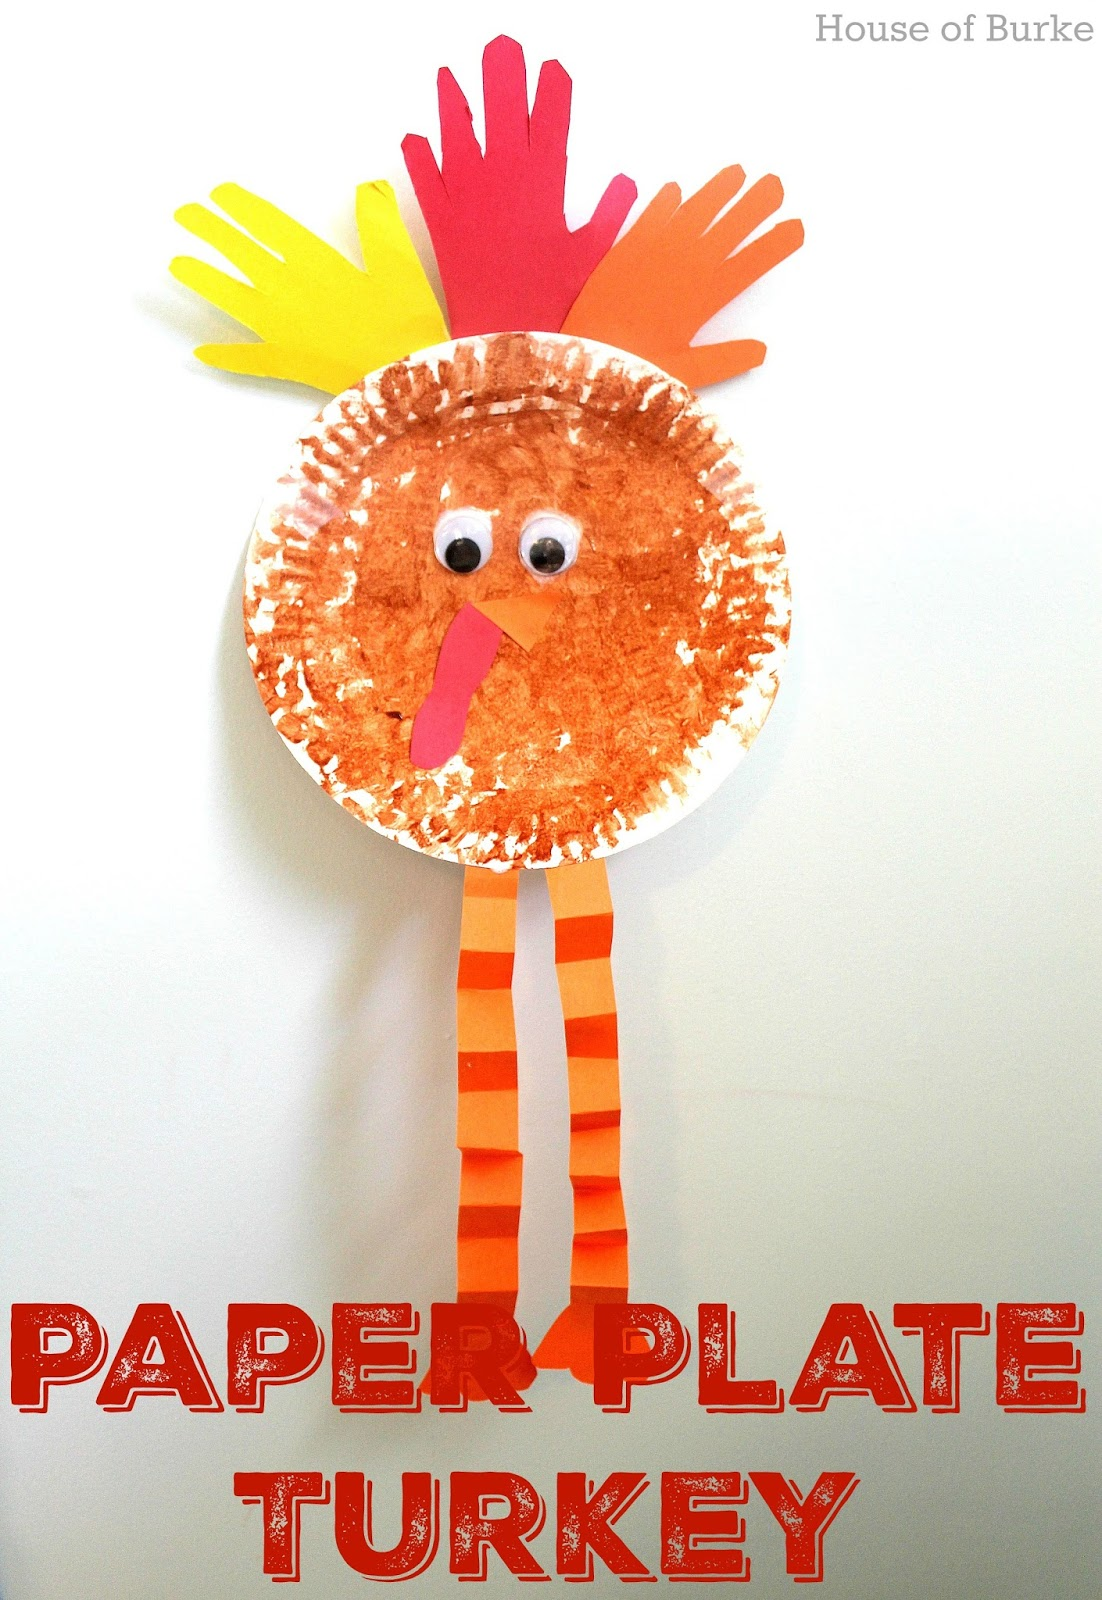 It\u0027s almost Turkey Day and this craft is the perfect last minute activity to keep your little one busy before the big meal!  sc 1 st  House of Burke & House of Burke: Paper Plate Turkey Craft